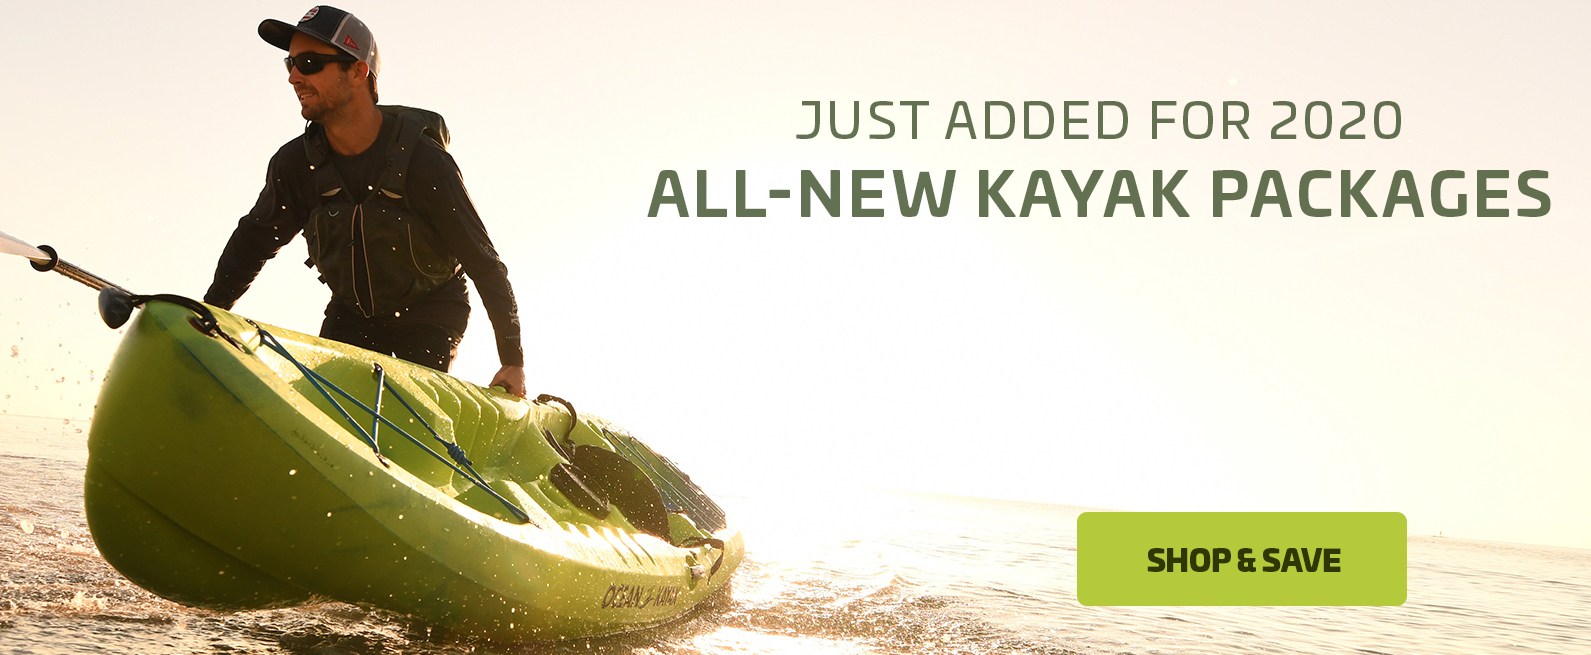 ALL-NEW KAYAK PACKAGES